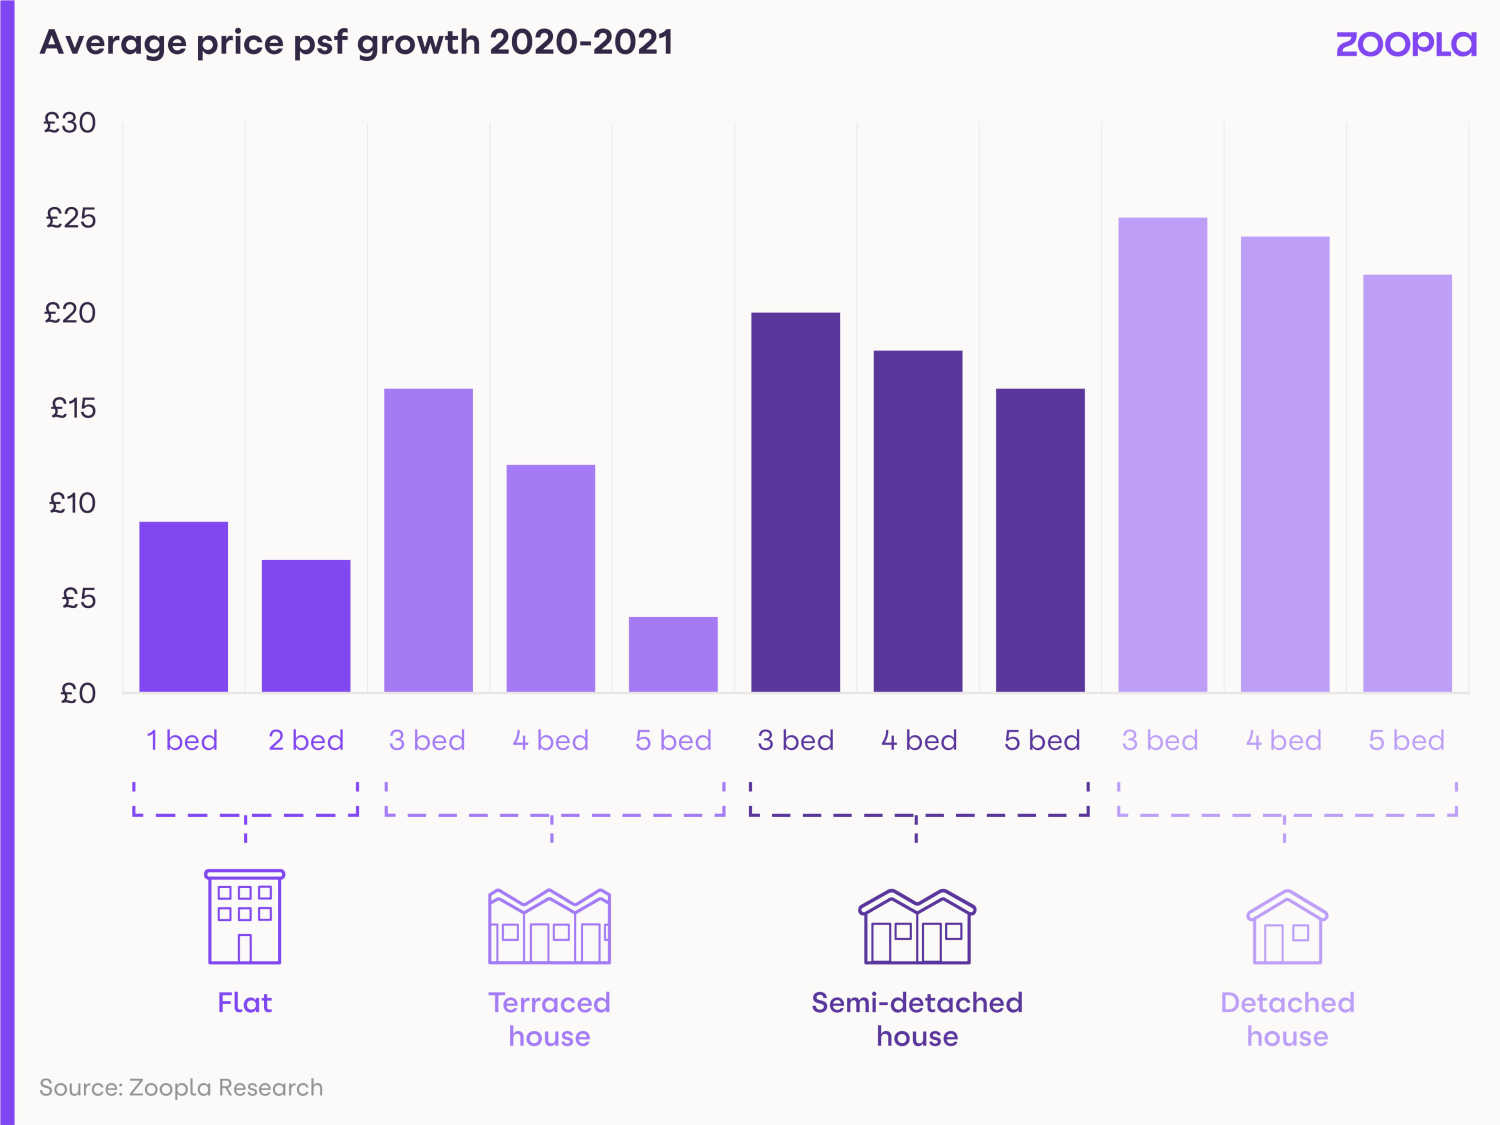 Image shows how average prices per sq ft have grown between 2020 and 2021.